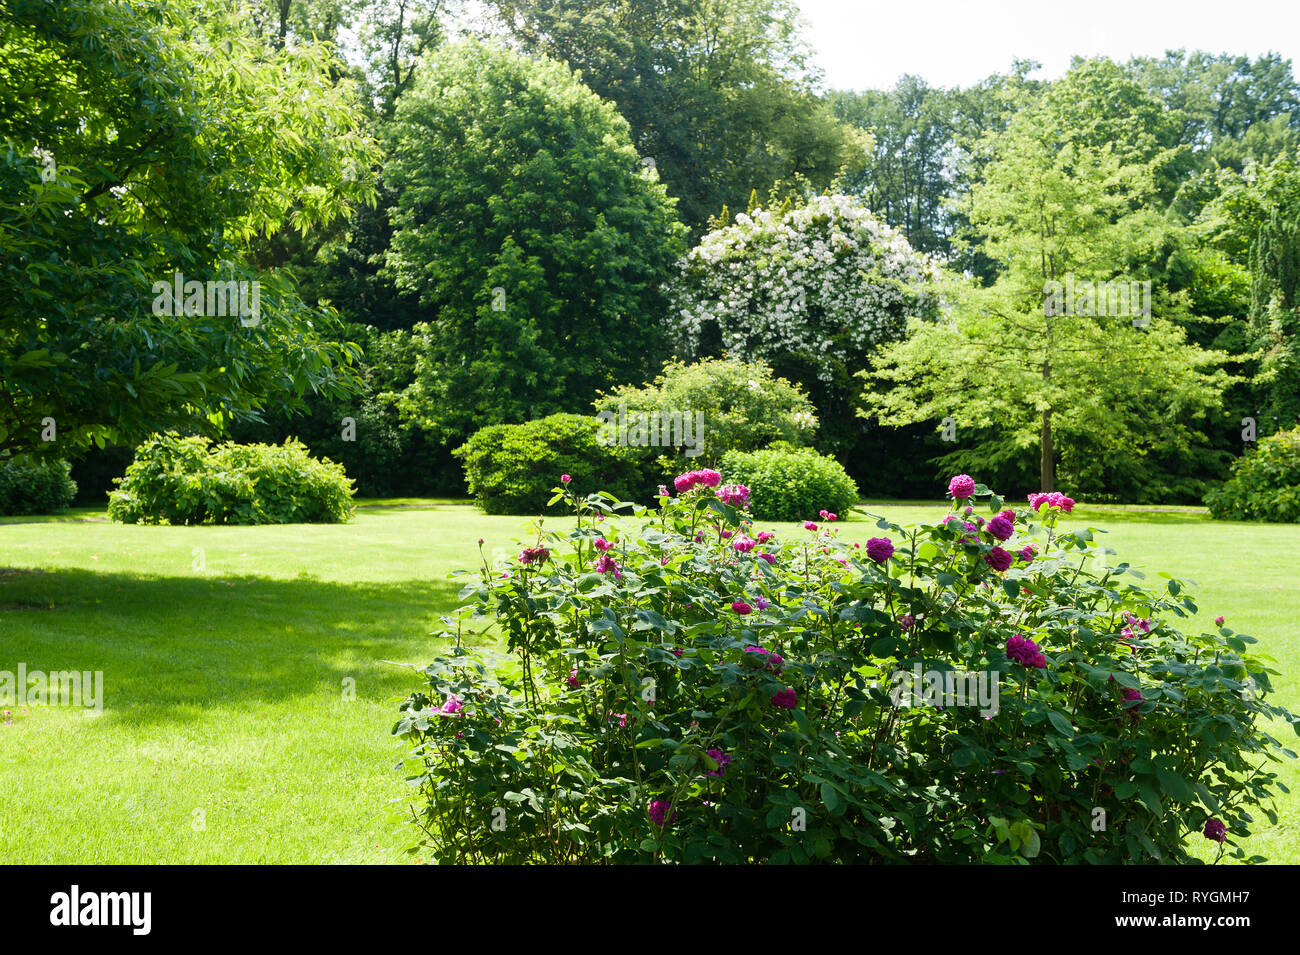 Flowers on lawn by trees - Stock Image